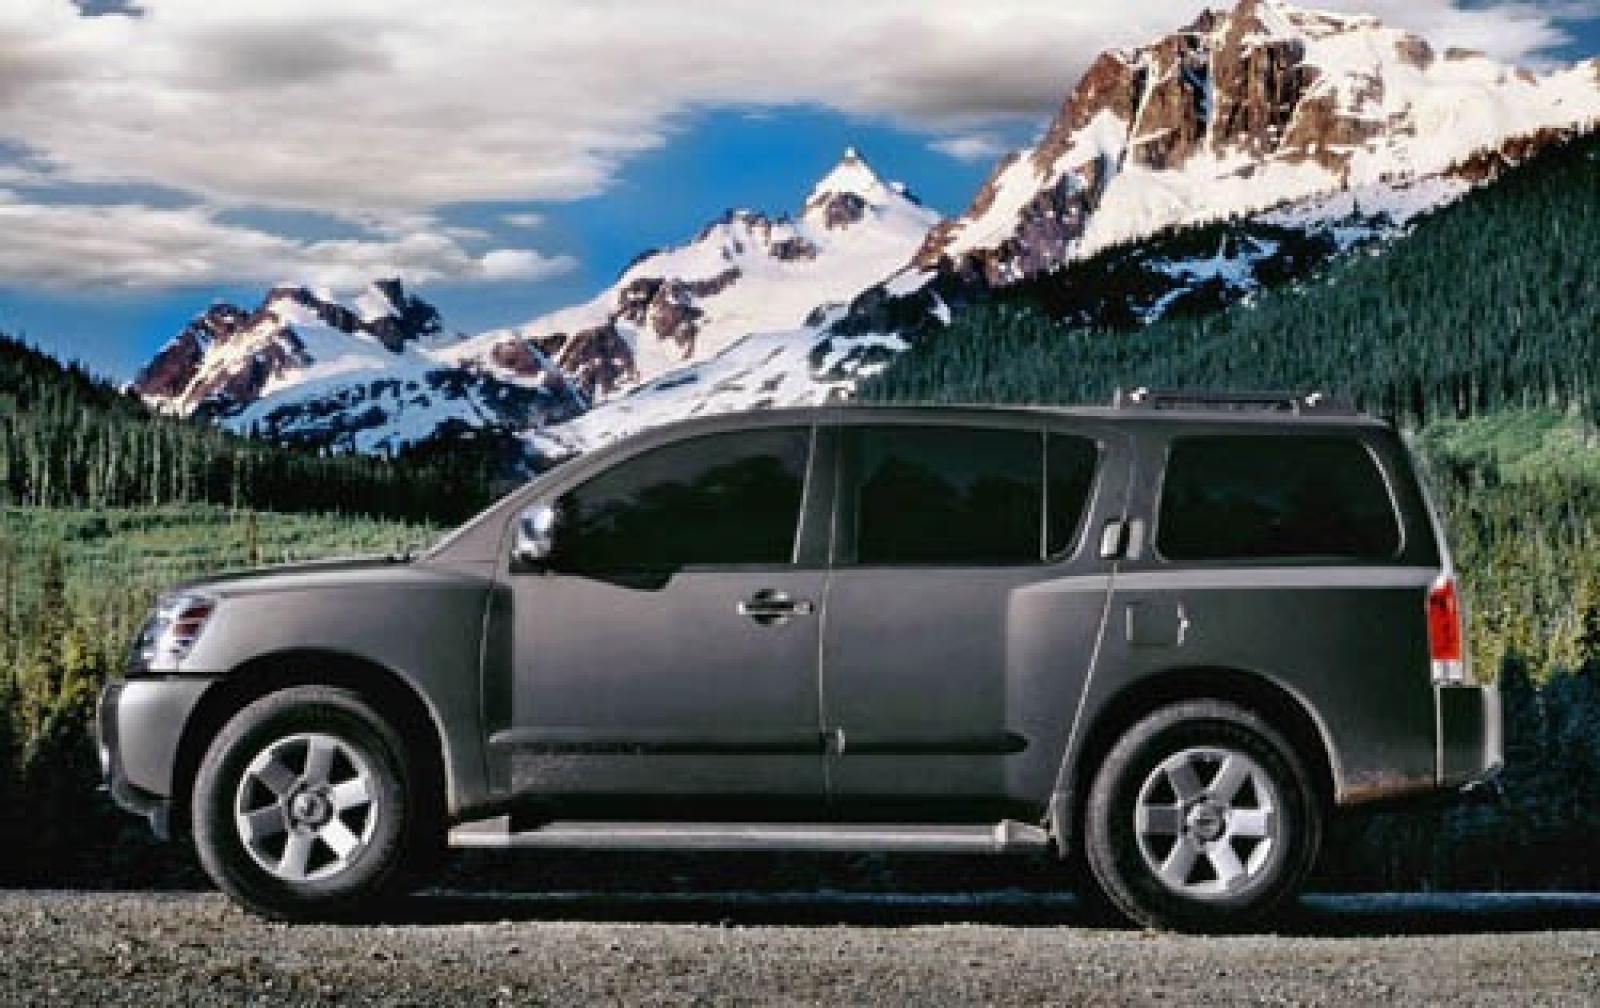 2005 nissan armada - information and photos - zombiedrive